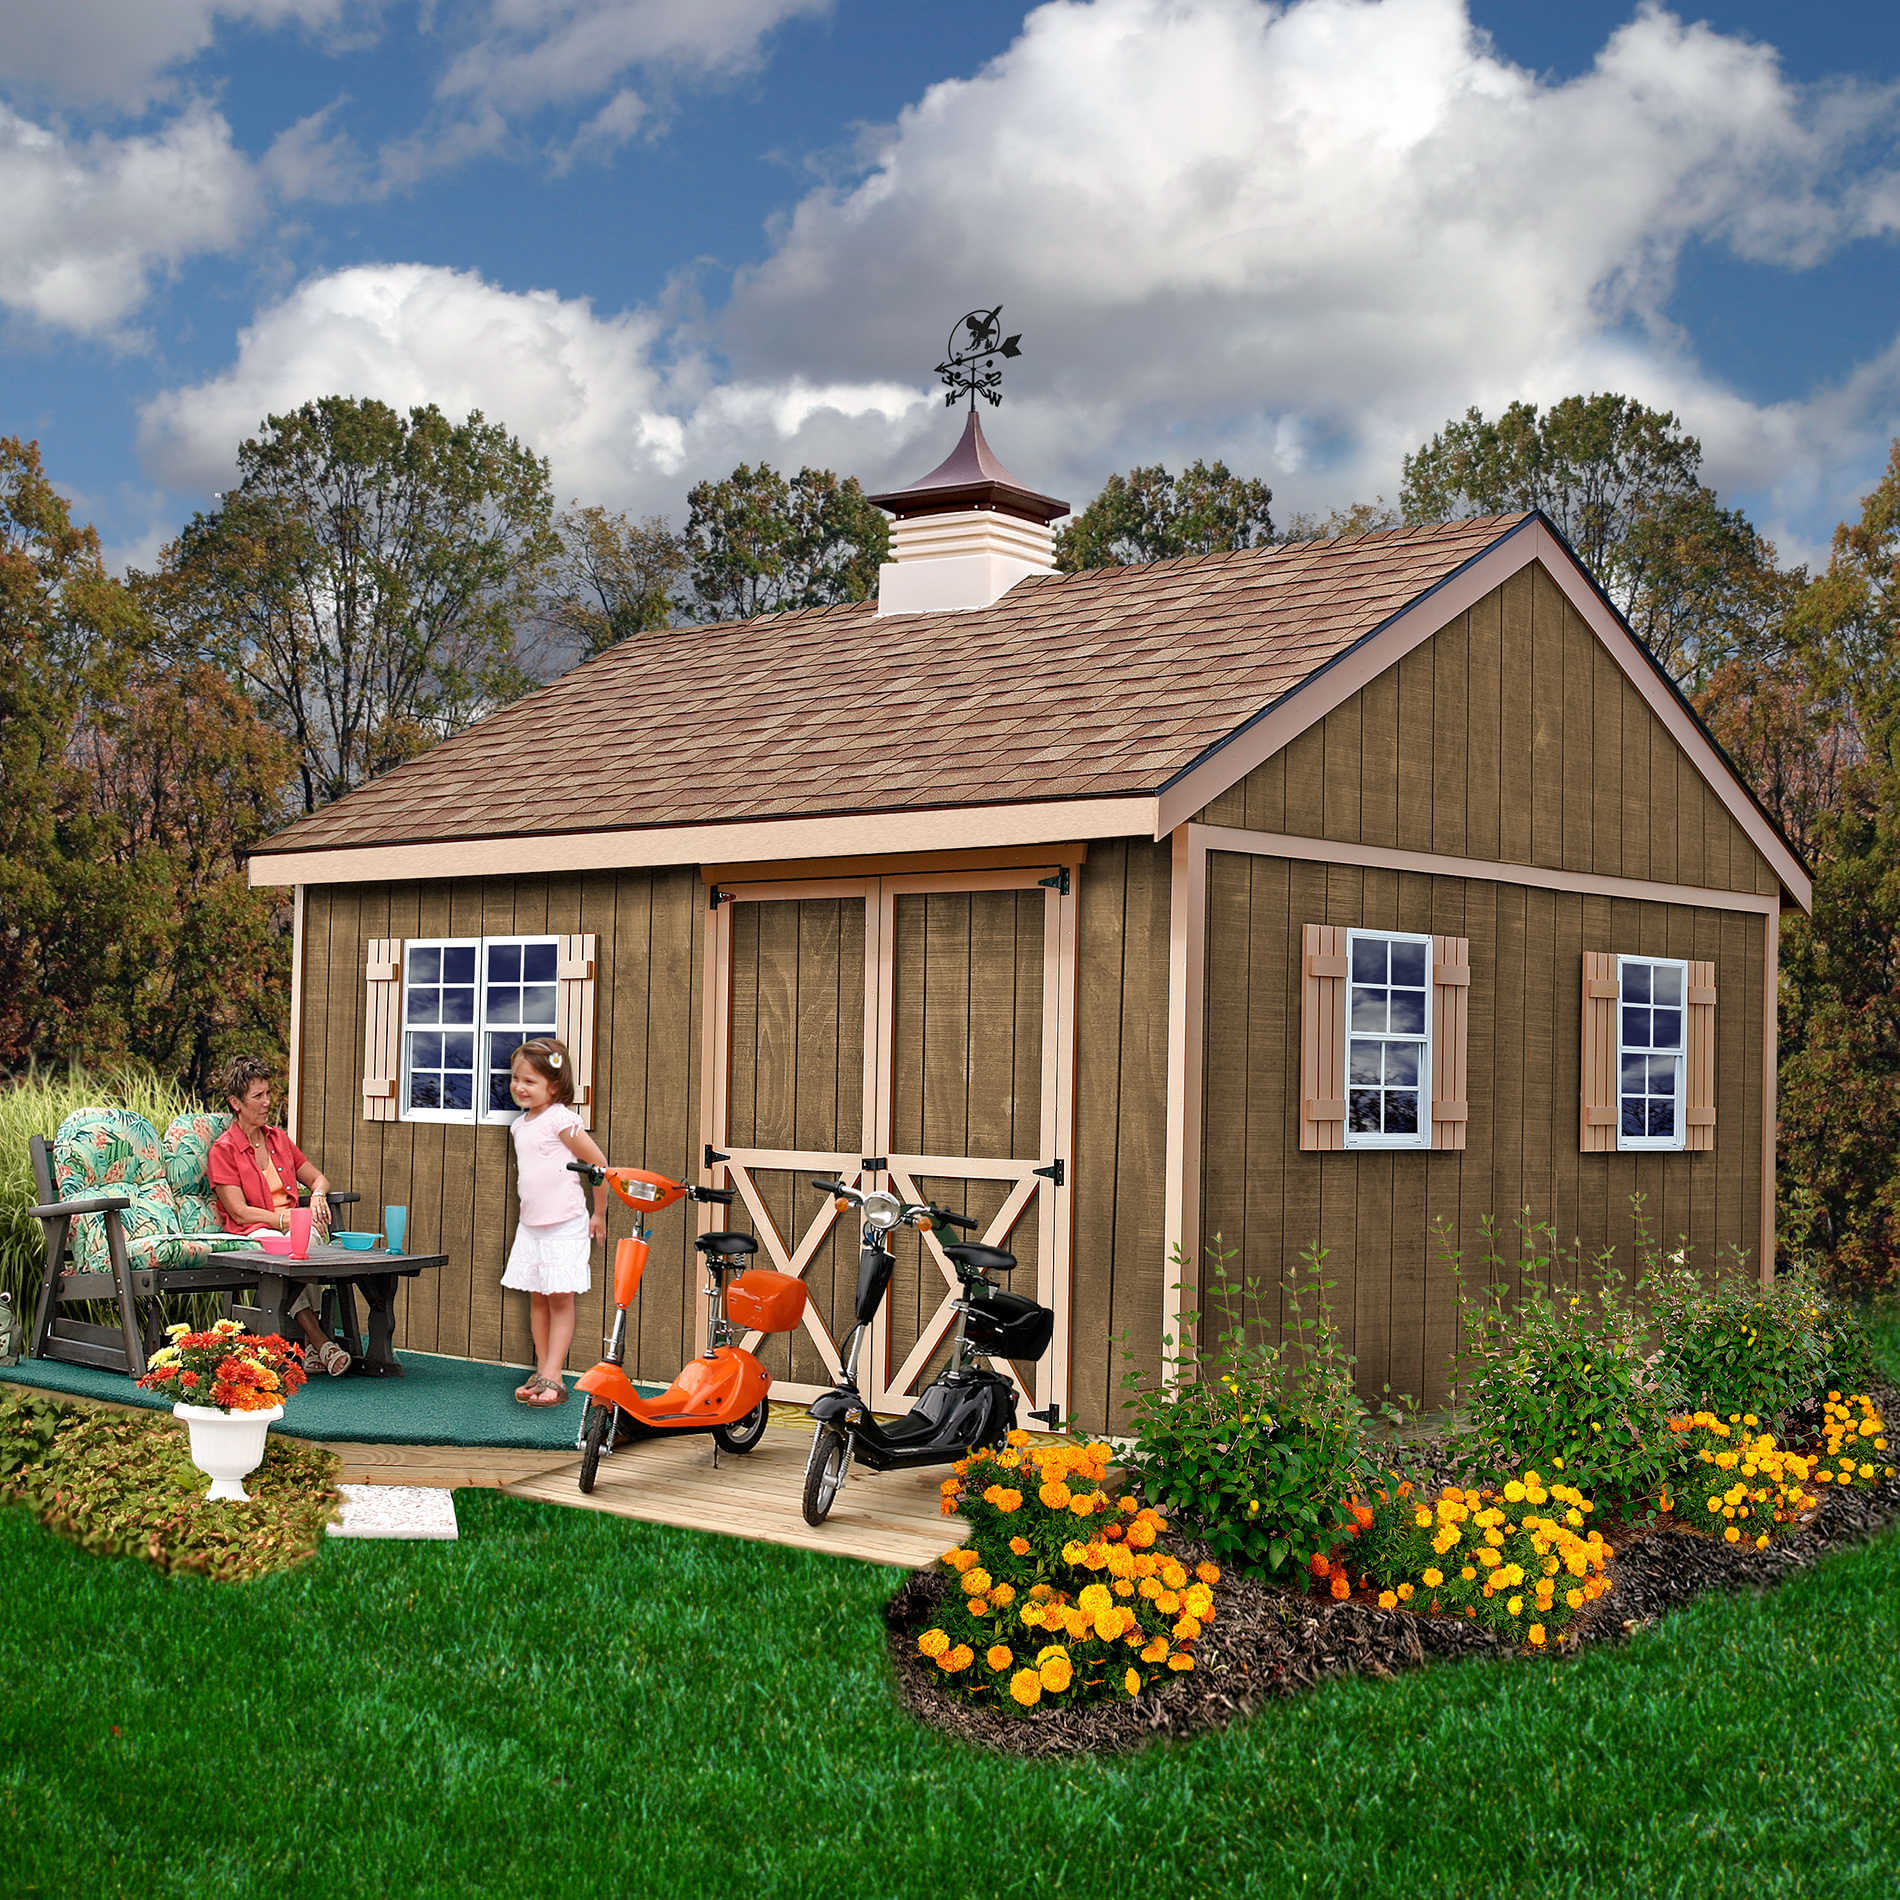 Best Barns   New Castle 16 Ft. X 12 Ft. Wood Storage Shed Kit With Floor  Including 4 X 4 Runners   Provides A 6 Ft. Peak Height For Generous Storage  And ...